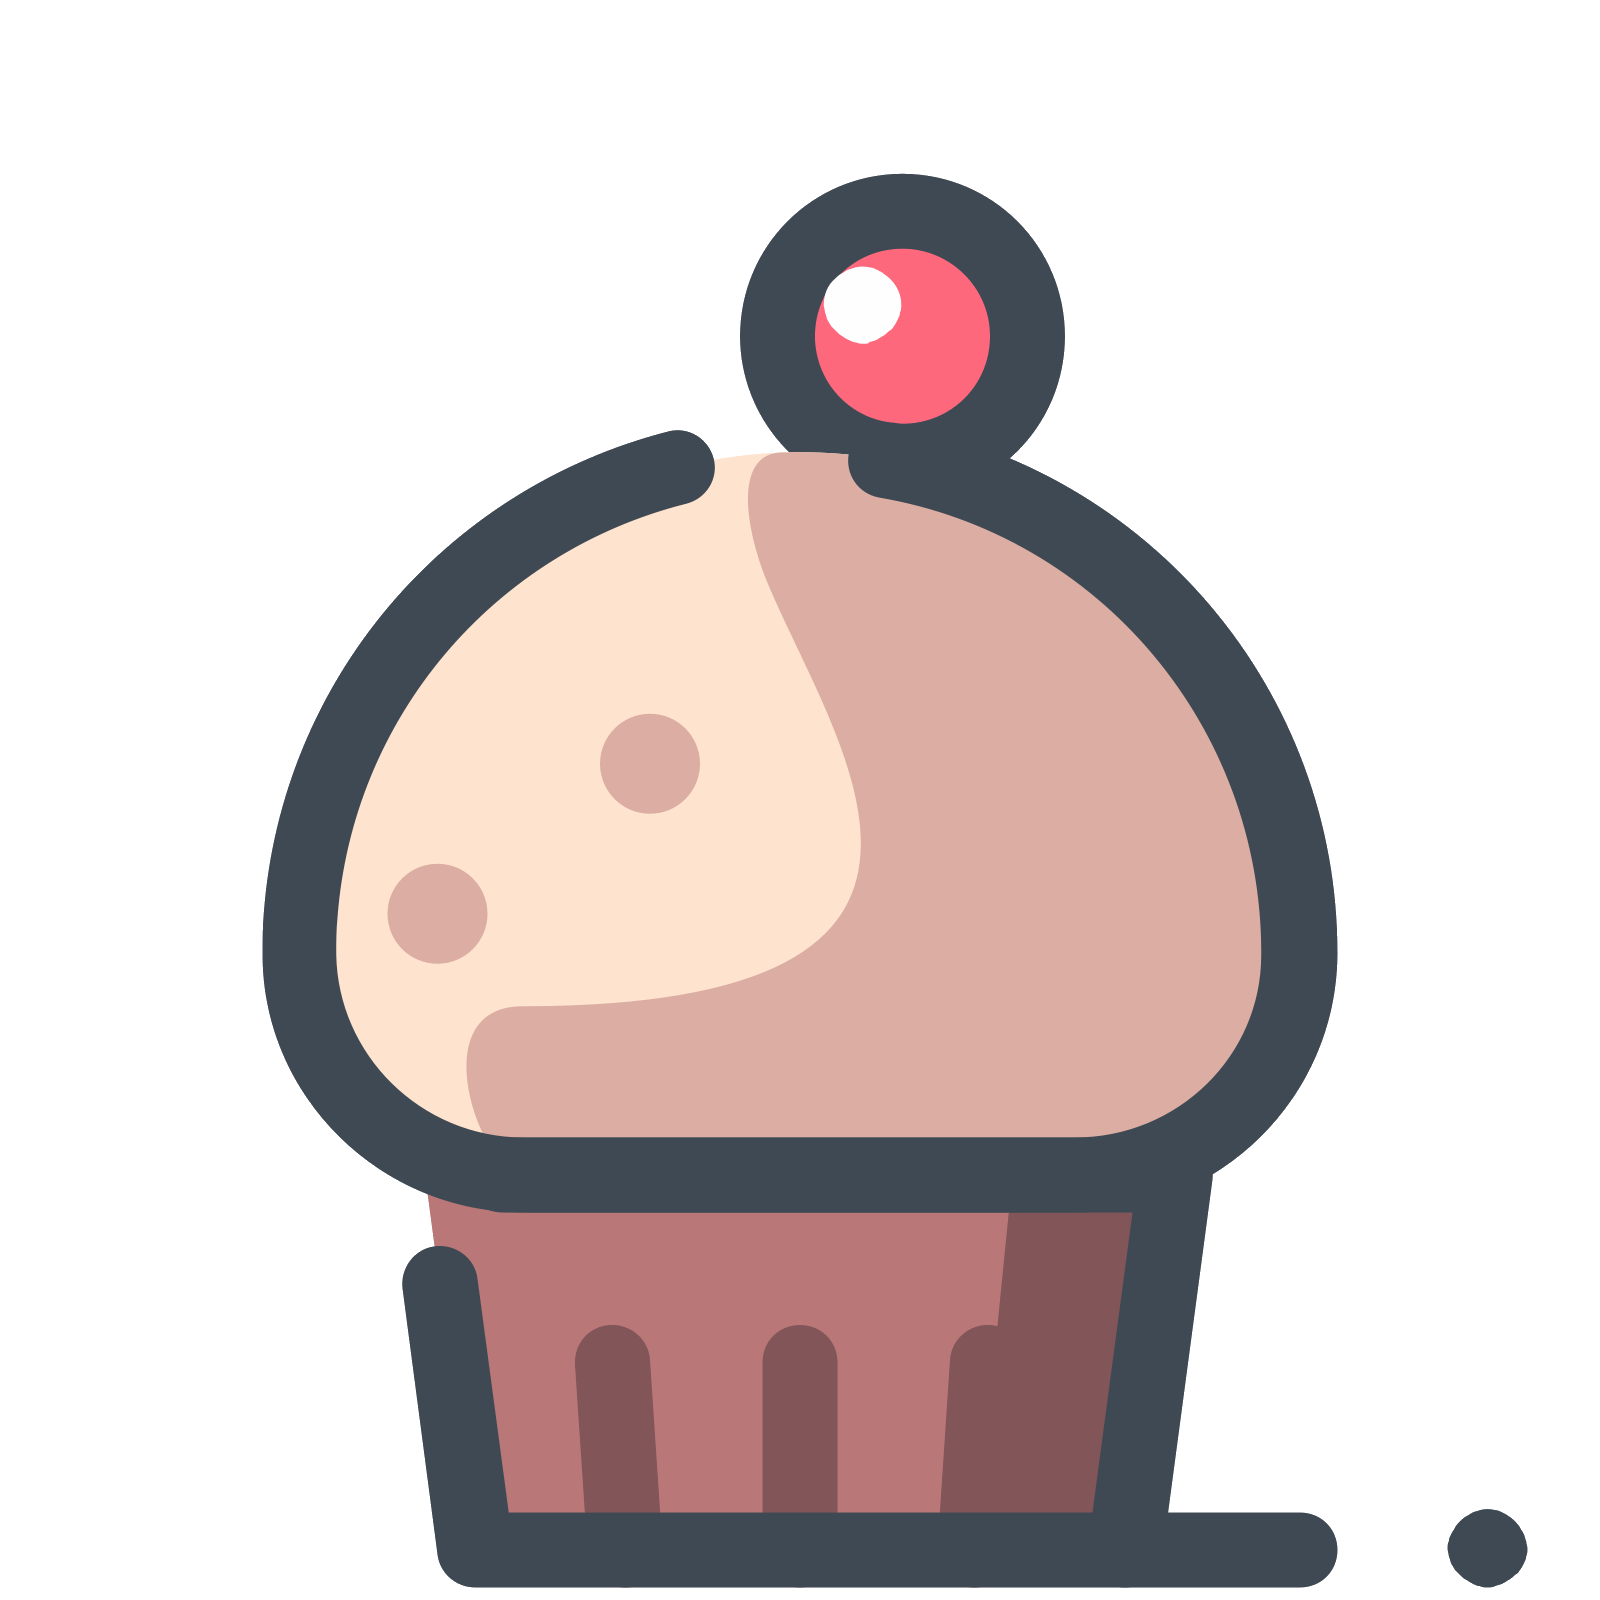 Berry vector doodle. Cupcake with a icon